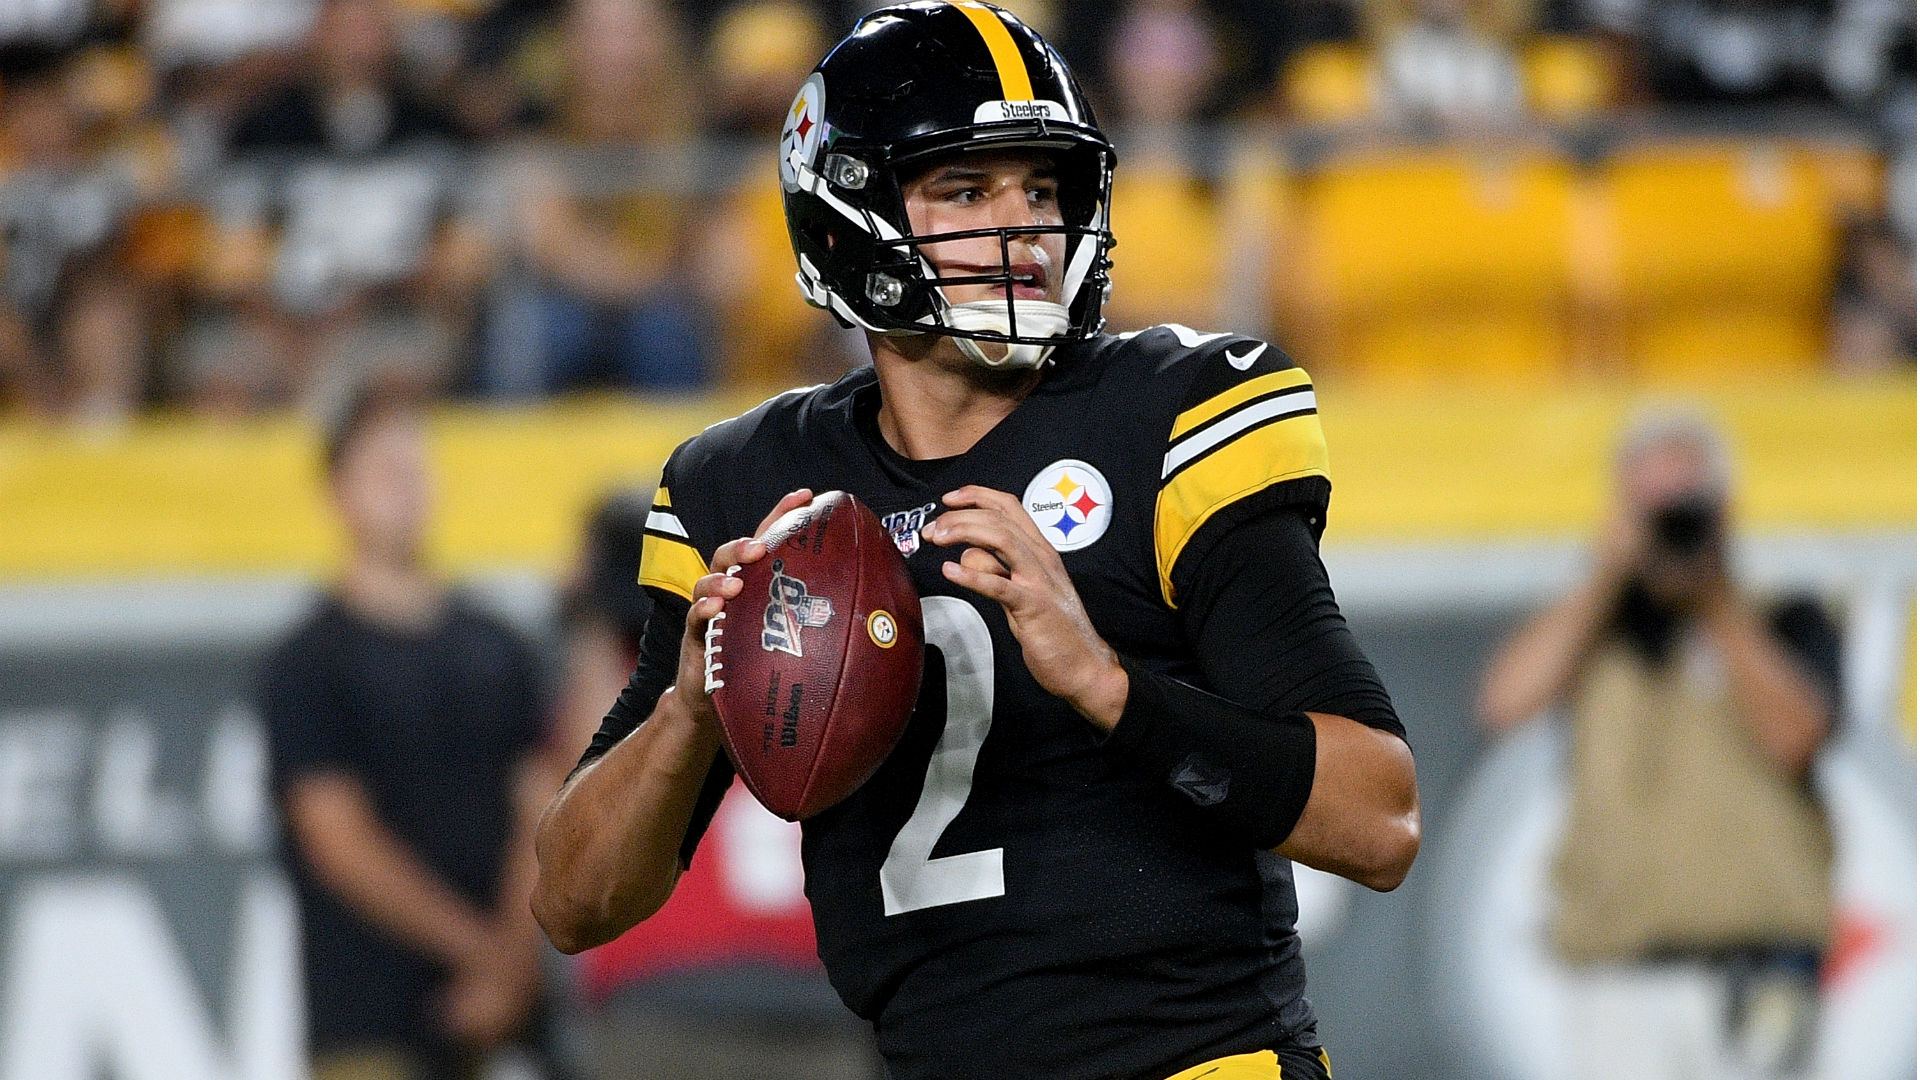 Steelers' JuJu Smith-Schuster on Mason Rudolph: He's 'going to help us win a lot of games moving forward'